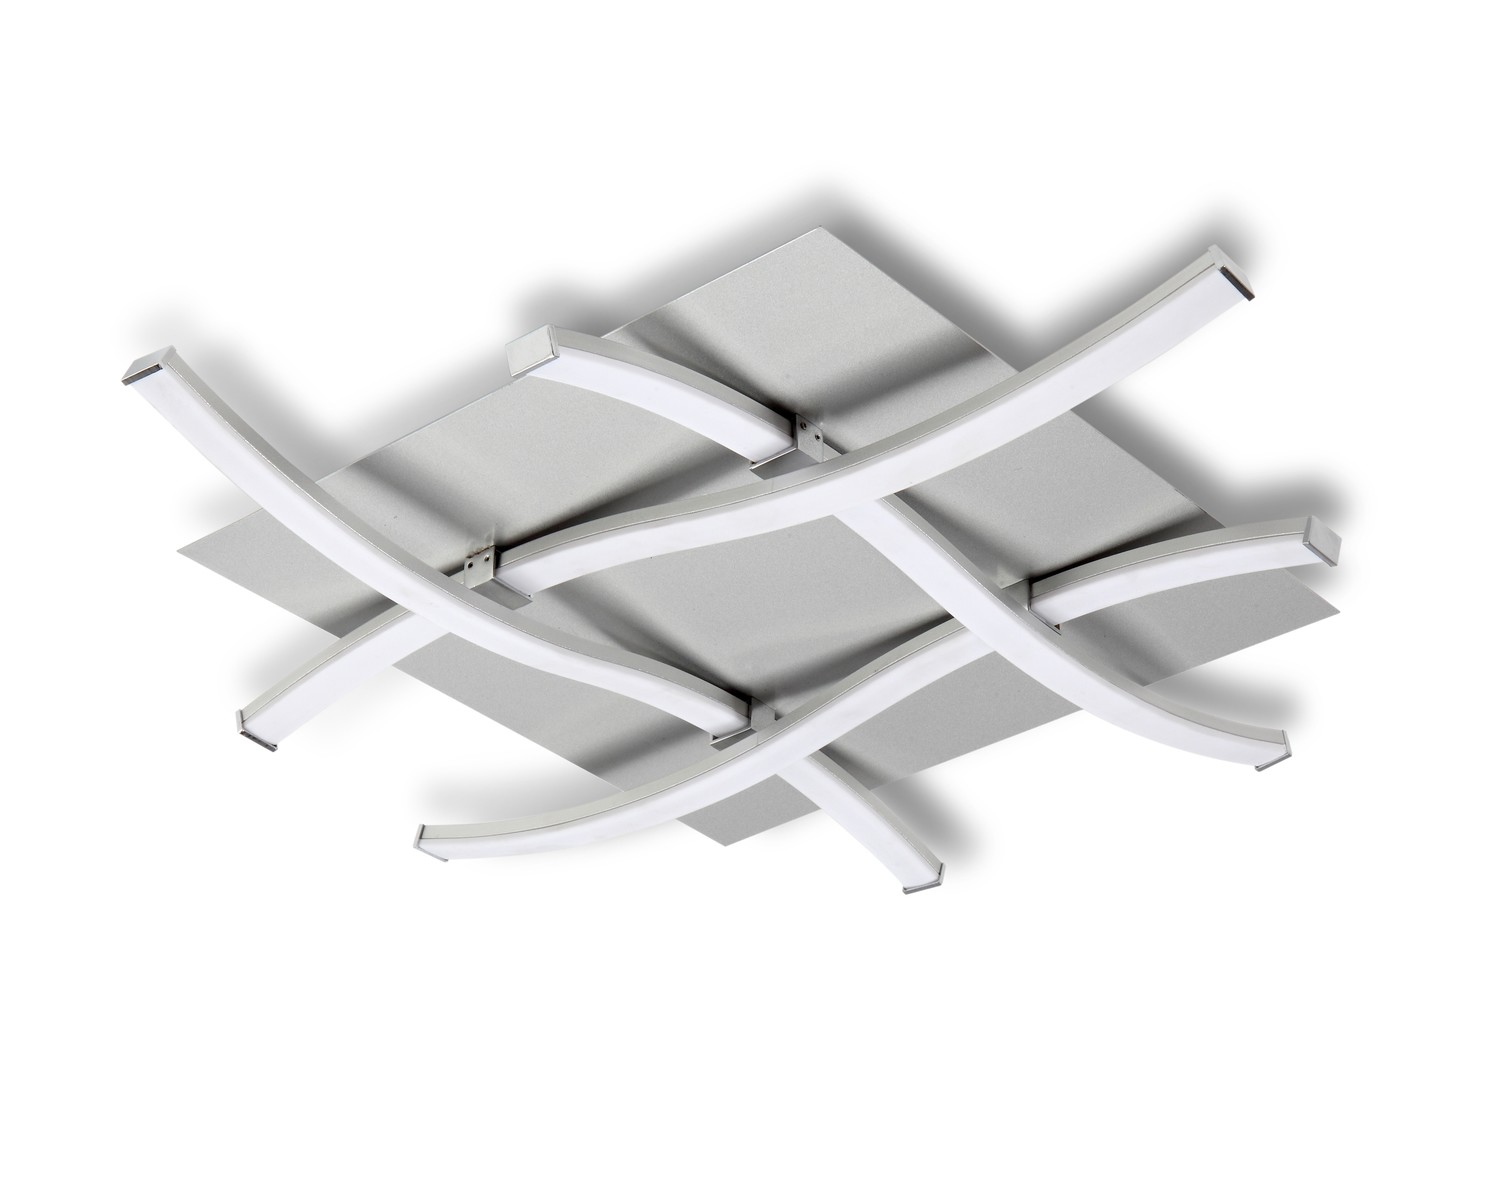 Nur Ceiling 34W LED 3000K, 2600lm, Dimmable Silver/Frosted Acrylic/Polished Chrome, 3yrs Warranty